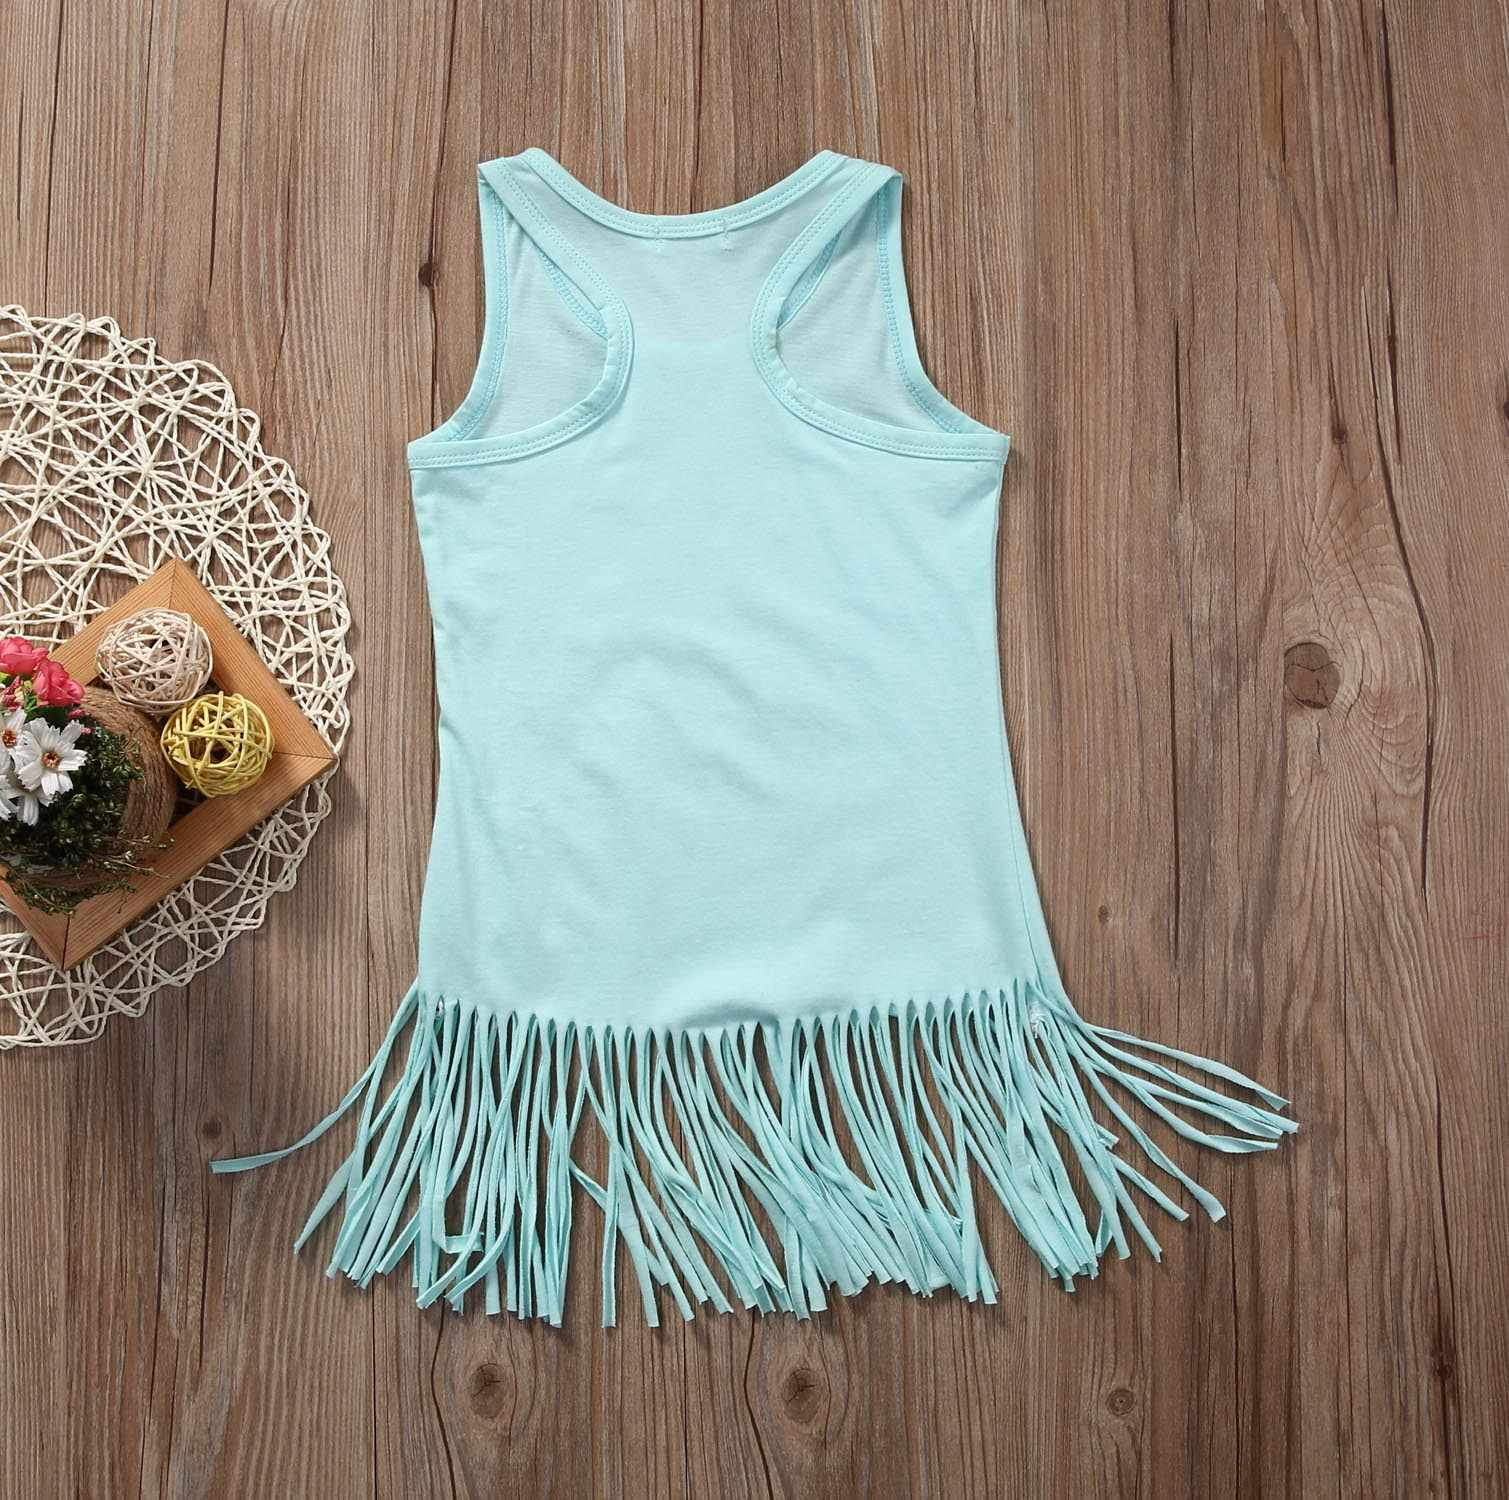 c9fe65ccd sky blue Toddler Infant Baby Kids Girls Tassel Dress Casual Crew Neck Dress  0-5 Years